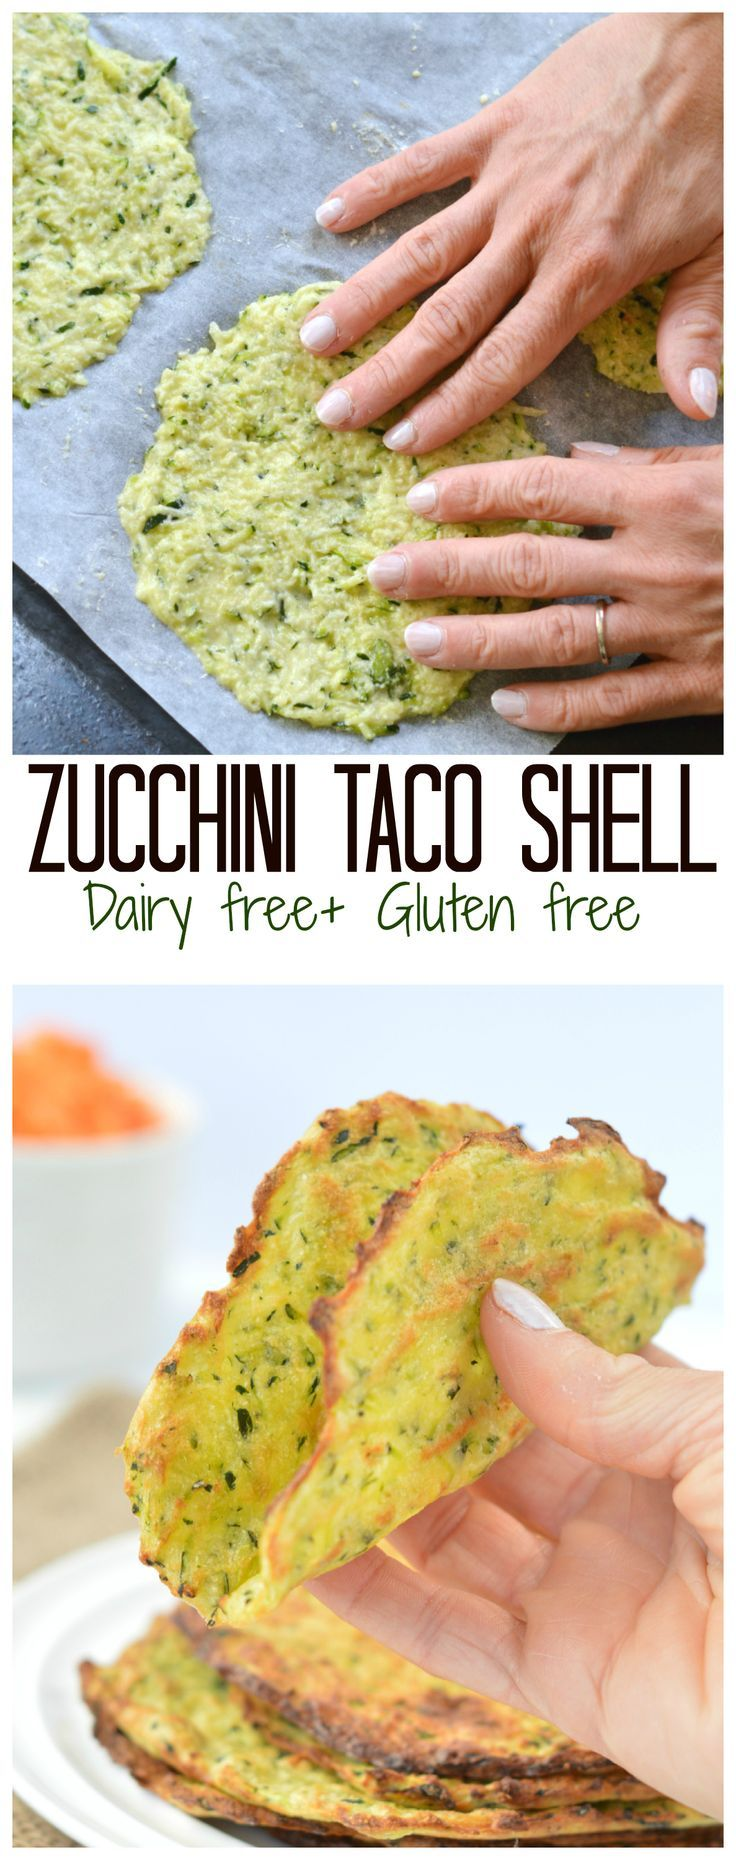 Gluten Free Zucchini Taco Shell are a super healthy soft taco idea for your next party! Thin, soft and won't crack! Easy to use as a tortilla or soft taco shell. No cheese in this recipe but healthy coconut flour and more! Click and get your recipe for your next game night!